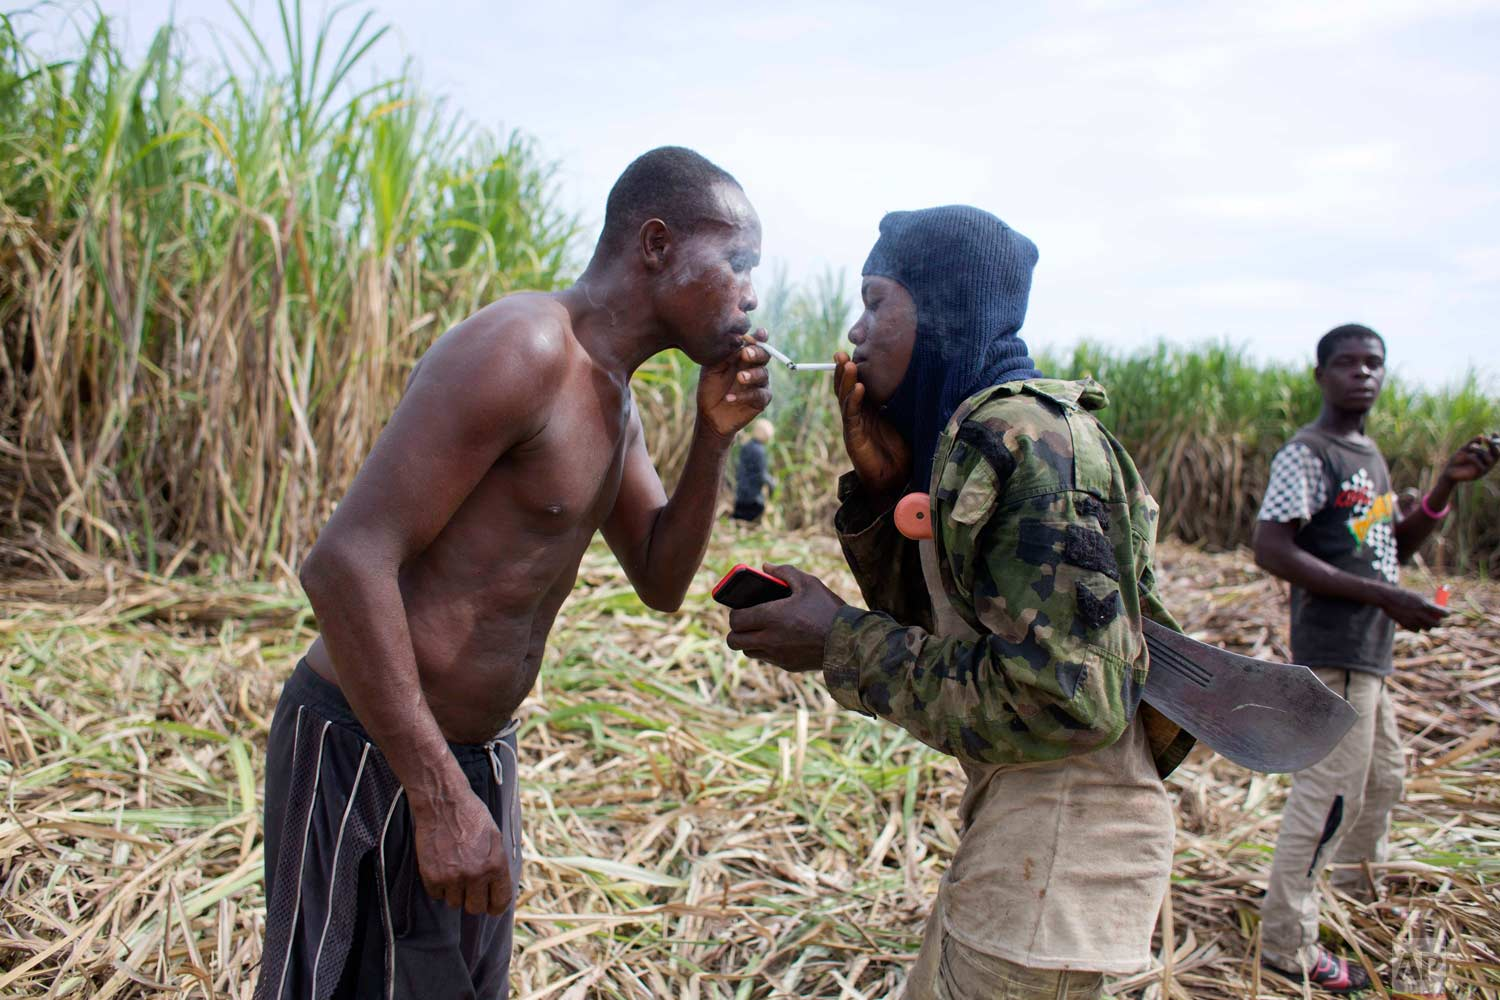 In this June 17, 2017 photo, Ronald Sincere, 20, right, lights his cigarette from that of Medez Cazeau, 42, as they take a break from cutting sugar cane on the Aubry farm in a rural area of Leogane, Haiti. The men migrated from Petit Goave to work year-round on this farm, about 45 minutes away by car, earning 800 gourdes, or about $12.50 dollars for each truck they fill with cane. The men said they manage to fill one truck in two days, which is used to make clairin, a sugar-based alcoholic drink. (AP Photo/Dieu Nalio Chery)